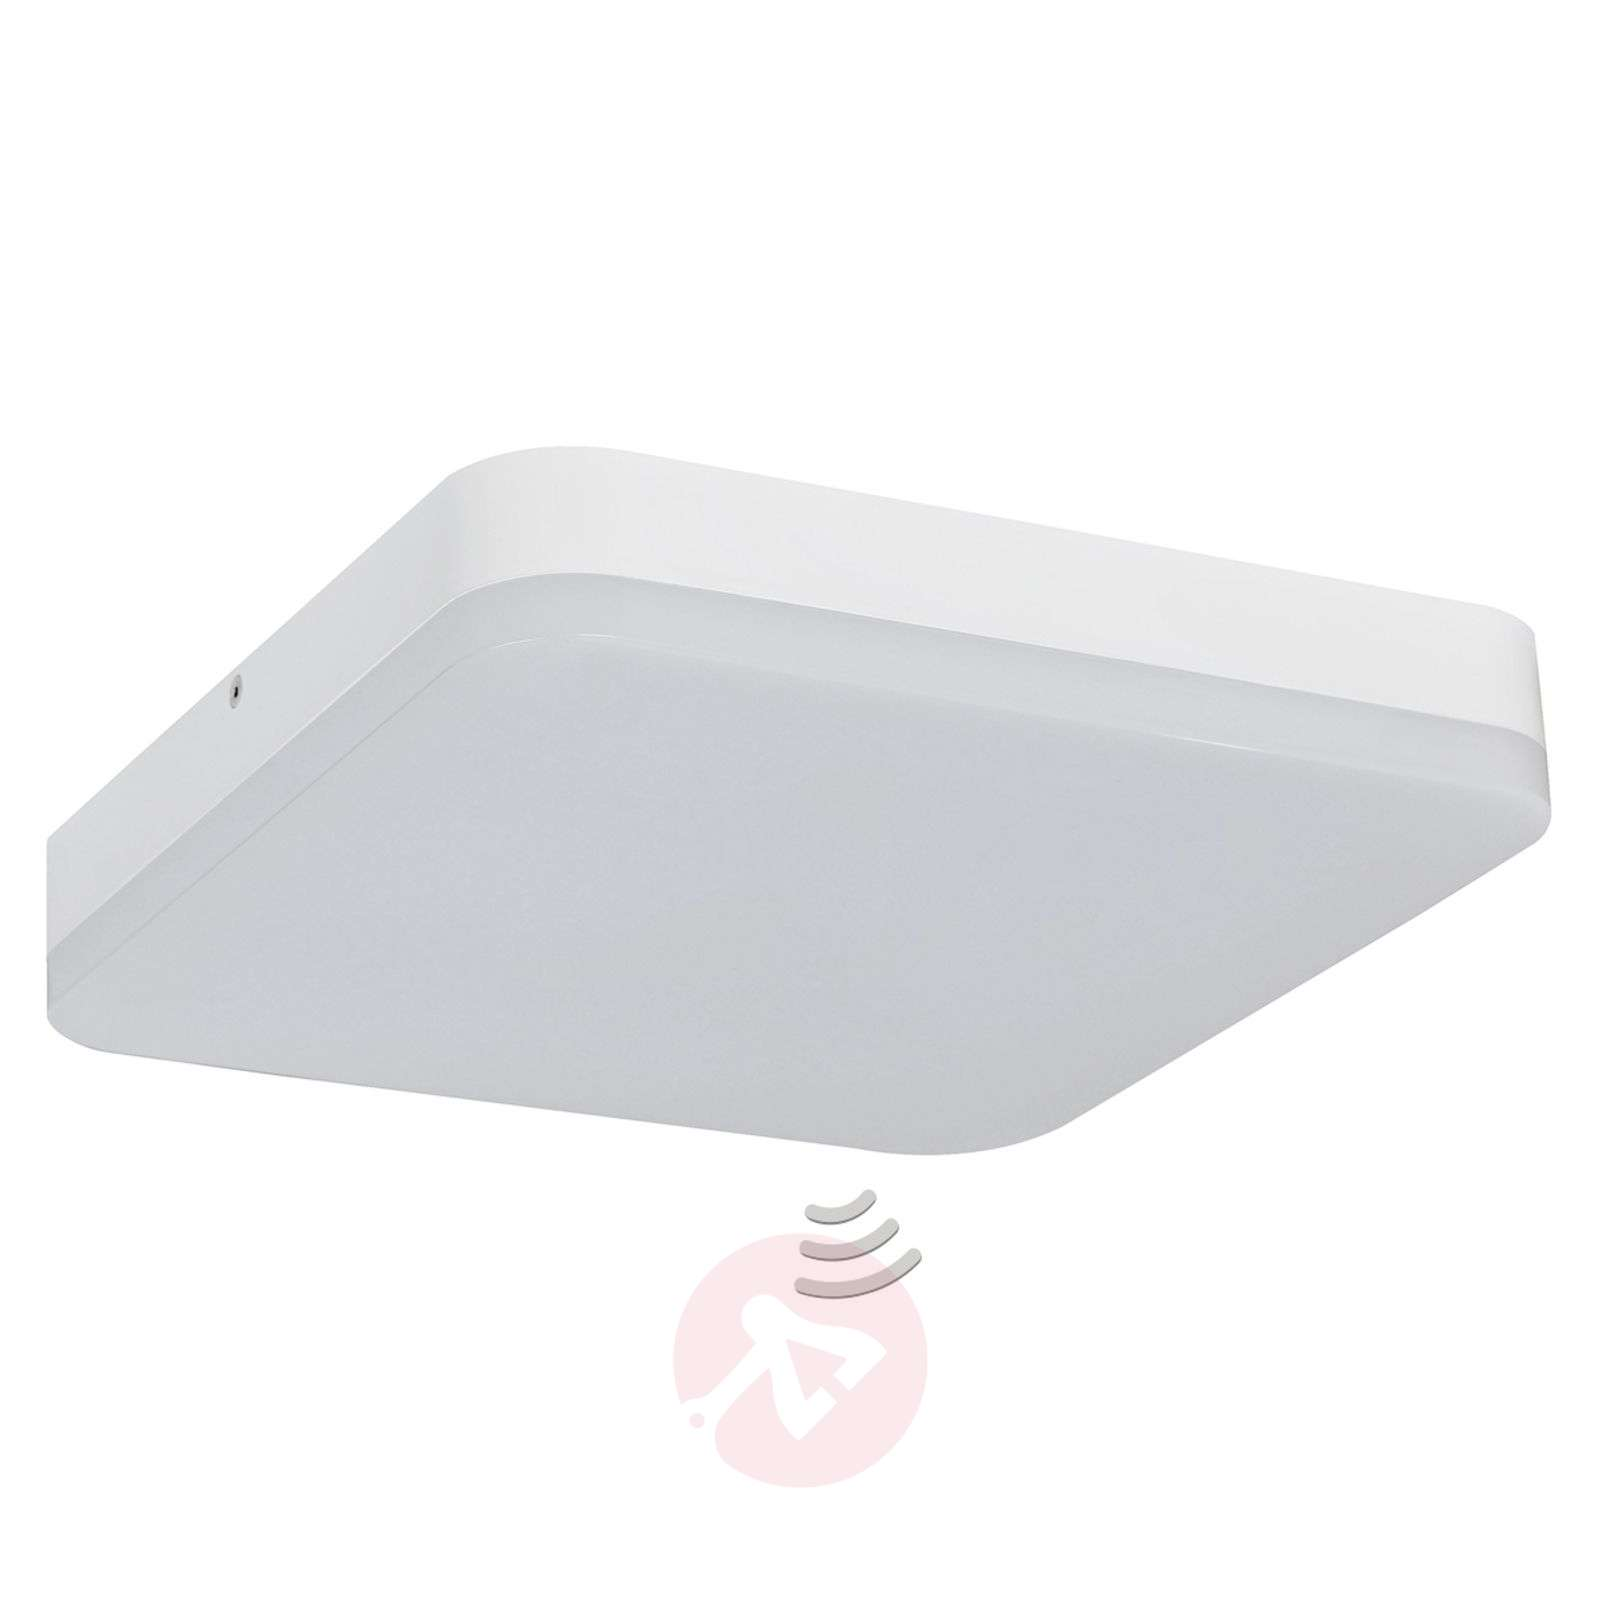 LED plafondlamp Office Square met sensor-8559227-02